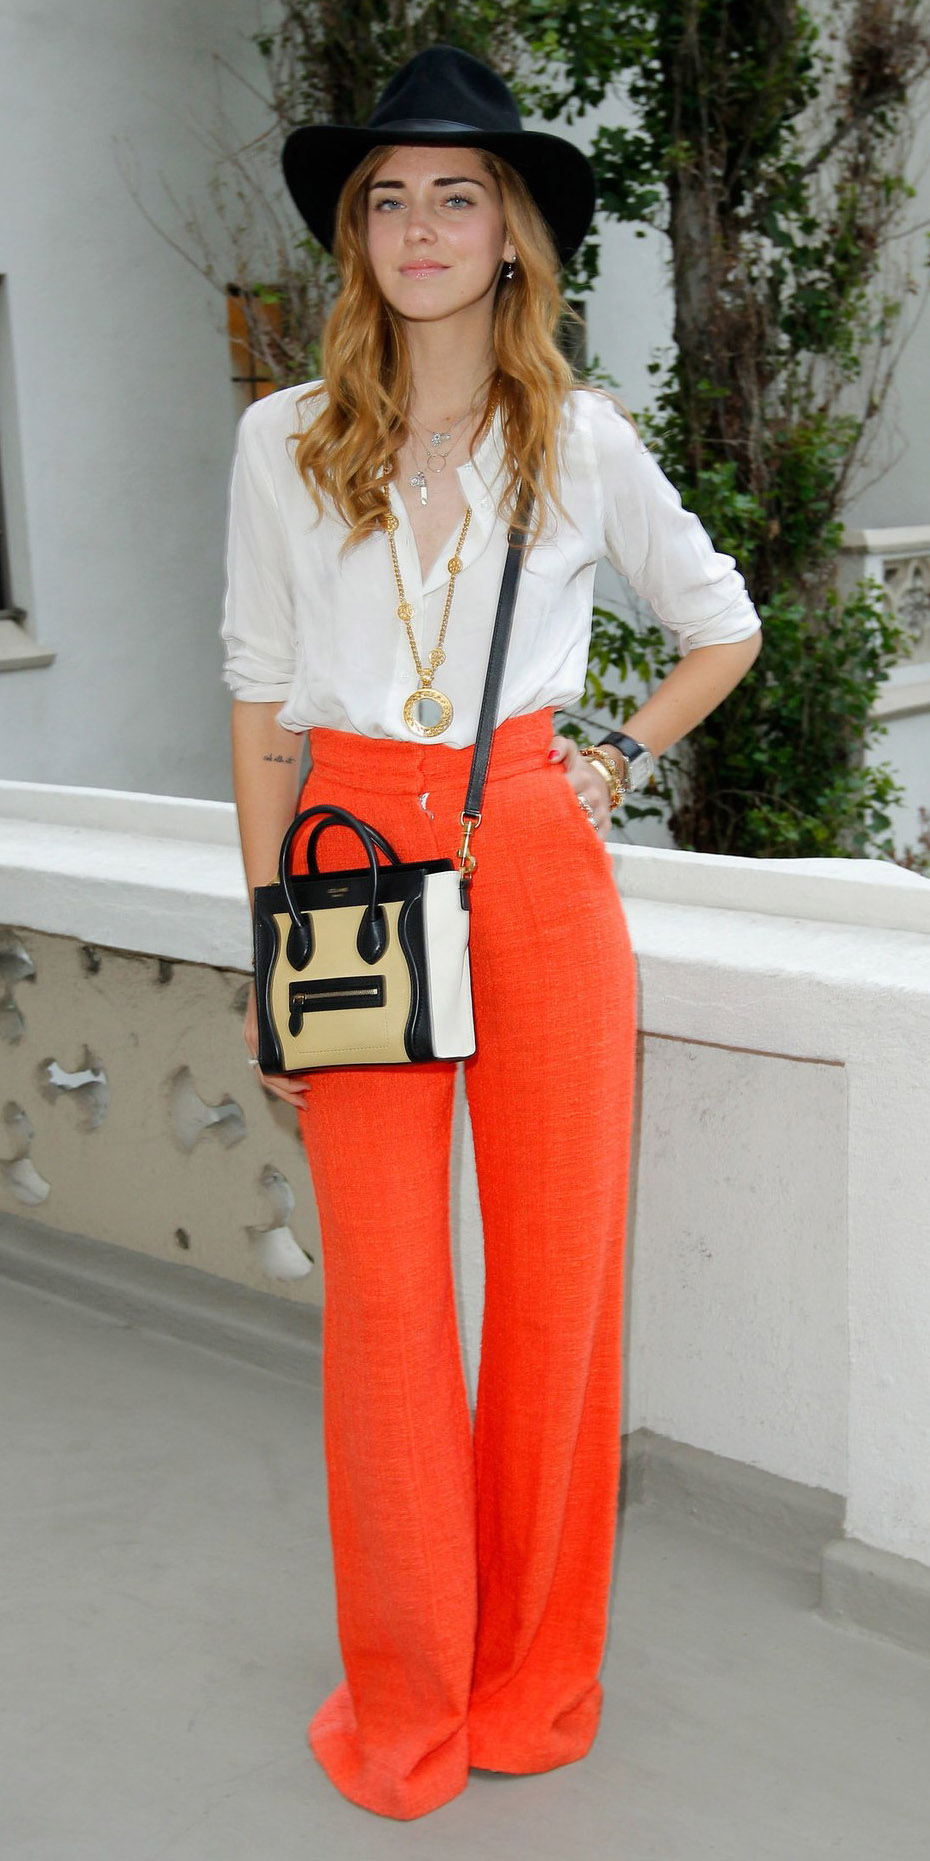 how-to-style-orange-wideleg-pants-white-top-blouse-blonde-hat-fall-winter-fashion-lunch.jpg